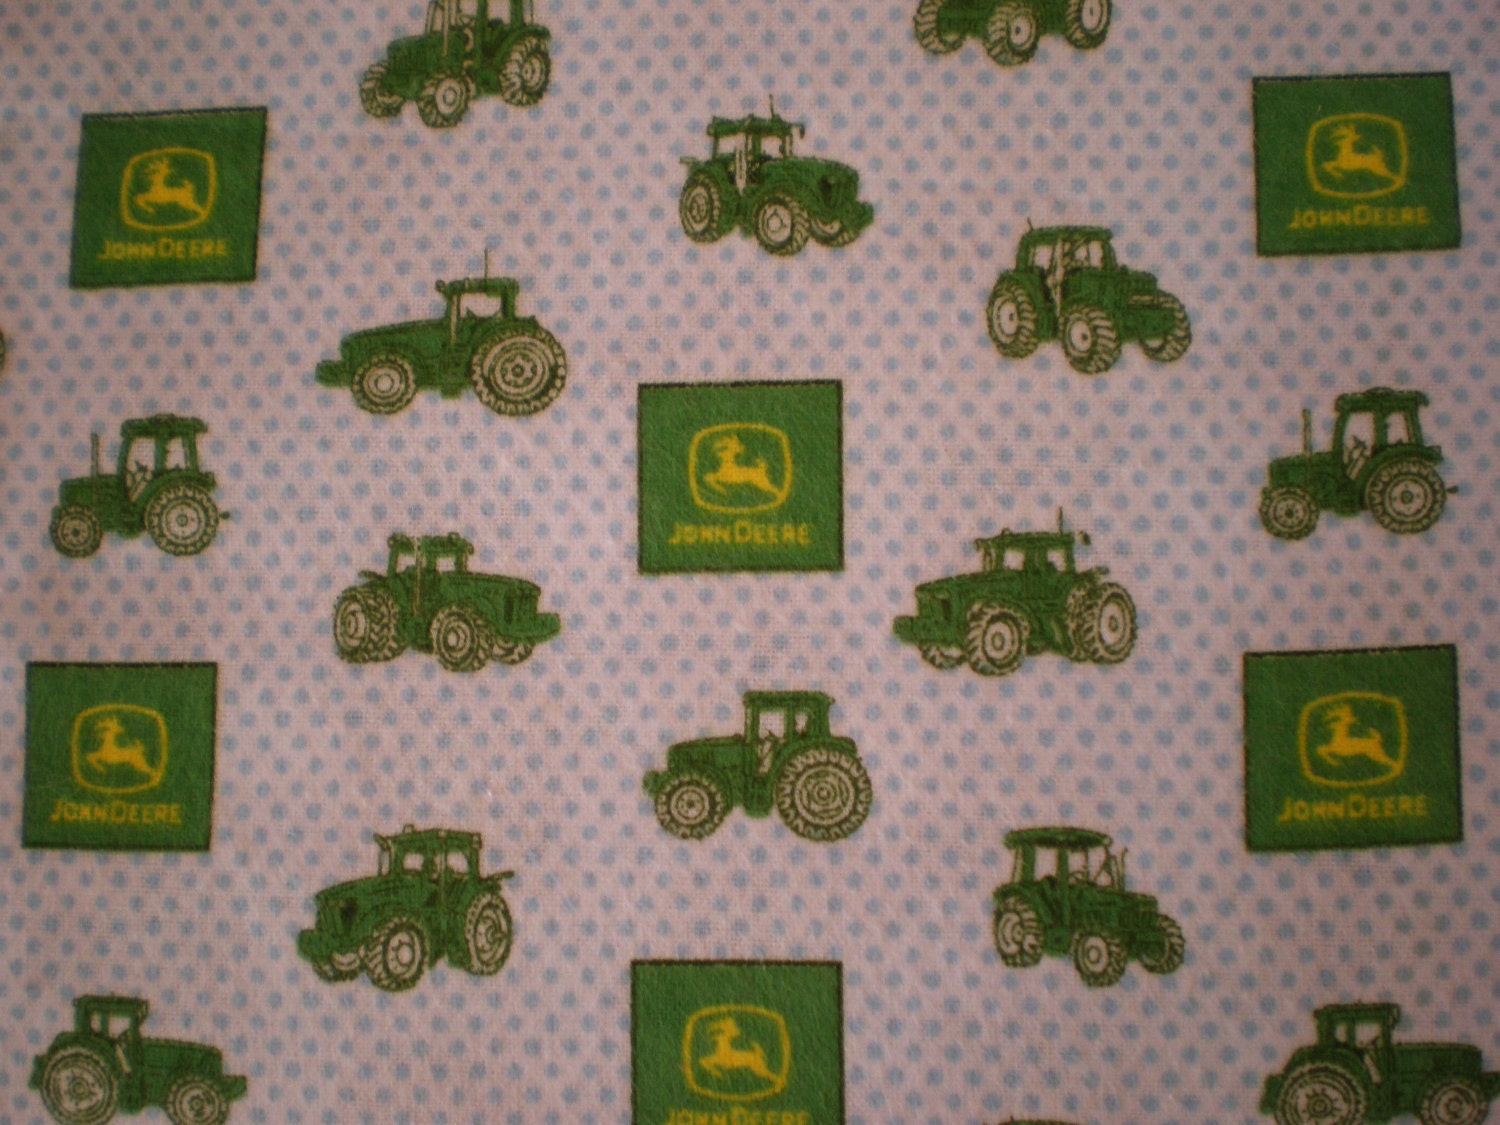 John Deere Fabric : John deere tractor soft cotton flannel fabric by cuddlesmore